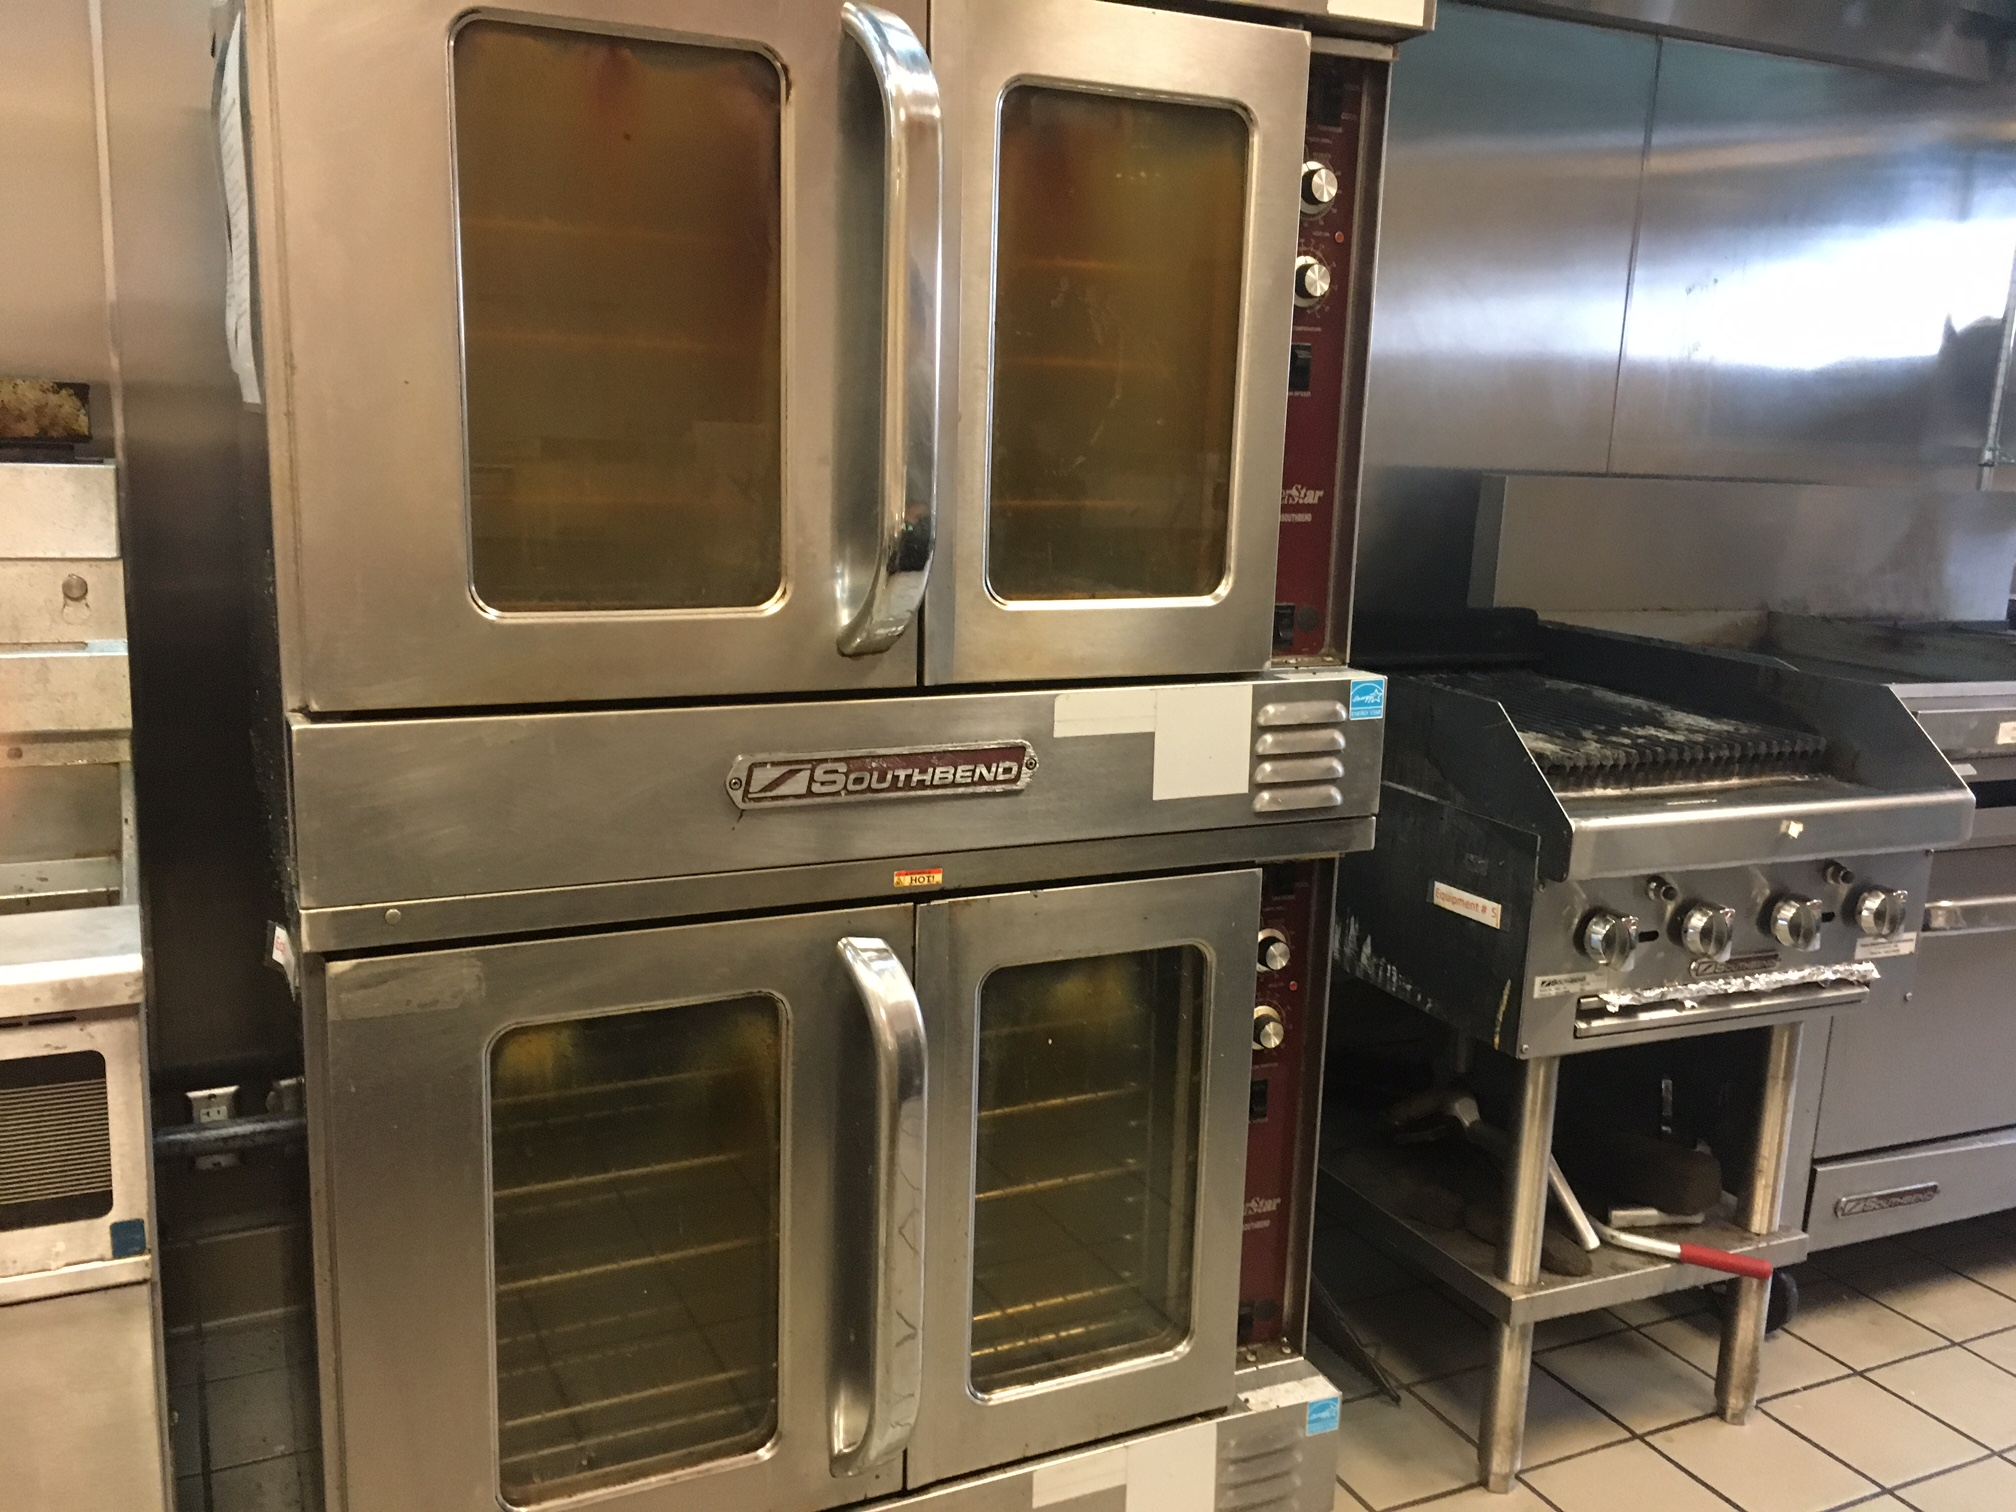 4 convection ovens